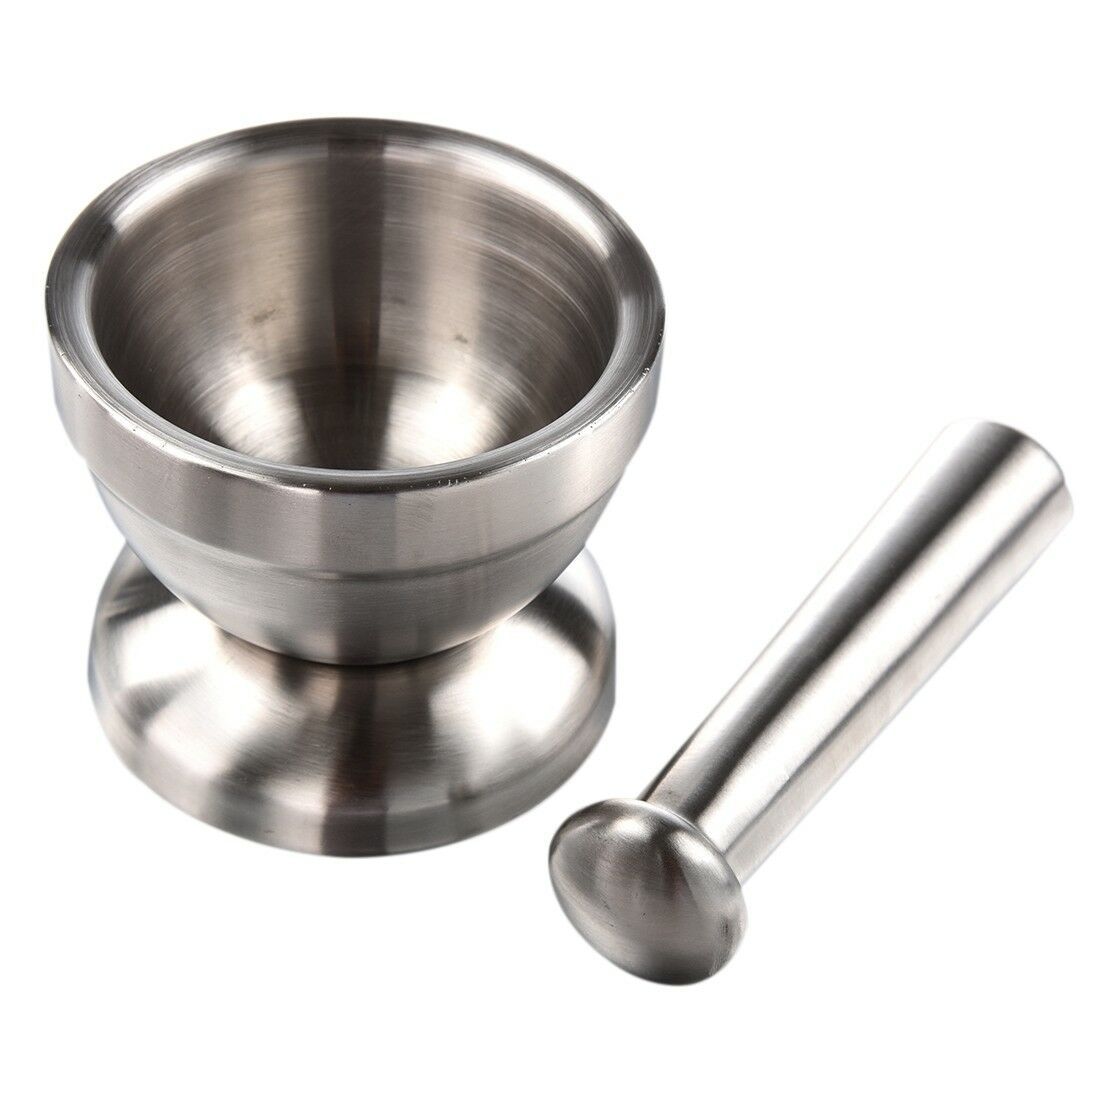 5X(Mortar and Pestle (Stainless Steel) G7C8